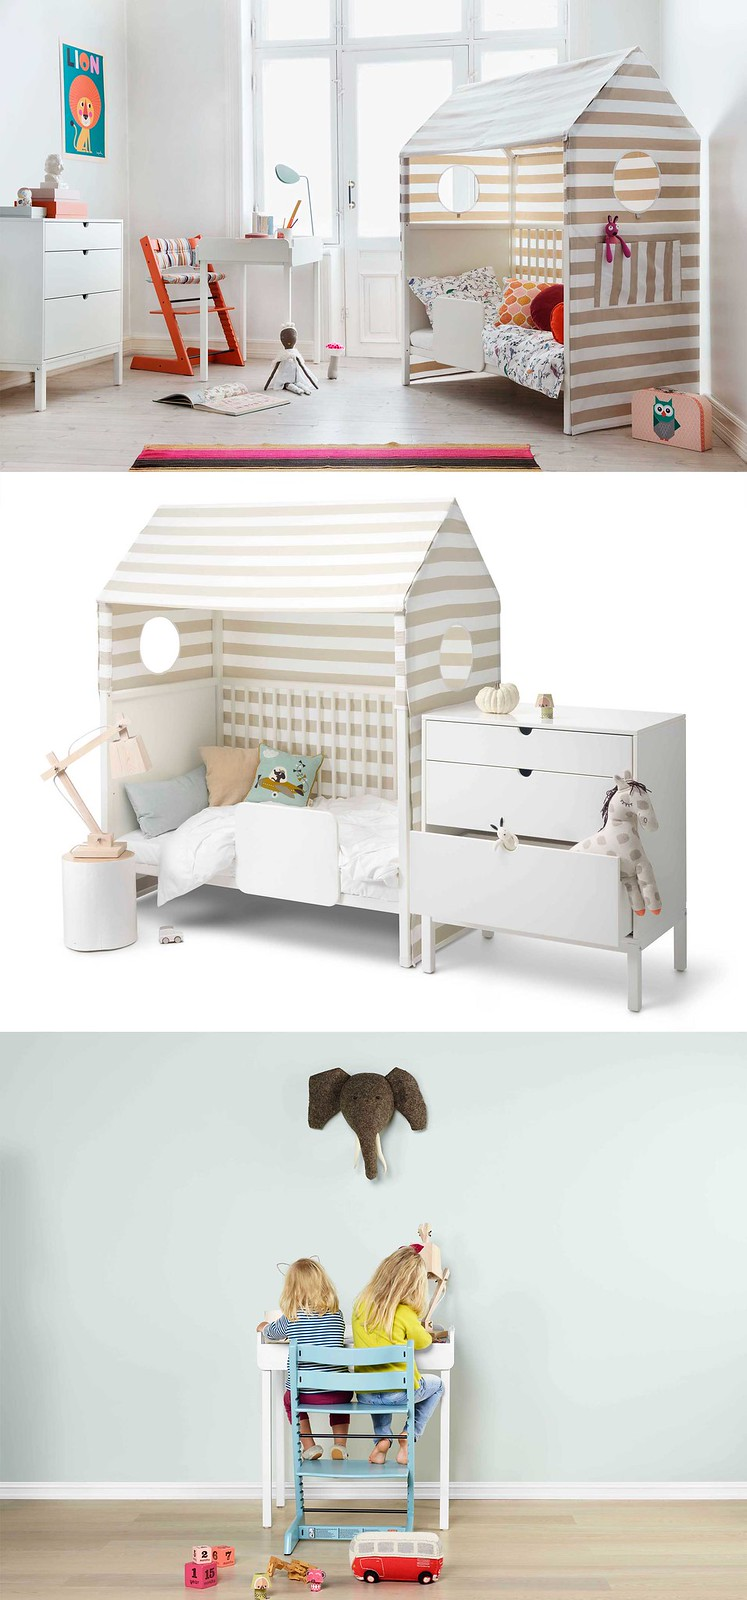 Stokke-Home-Monicositas-2